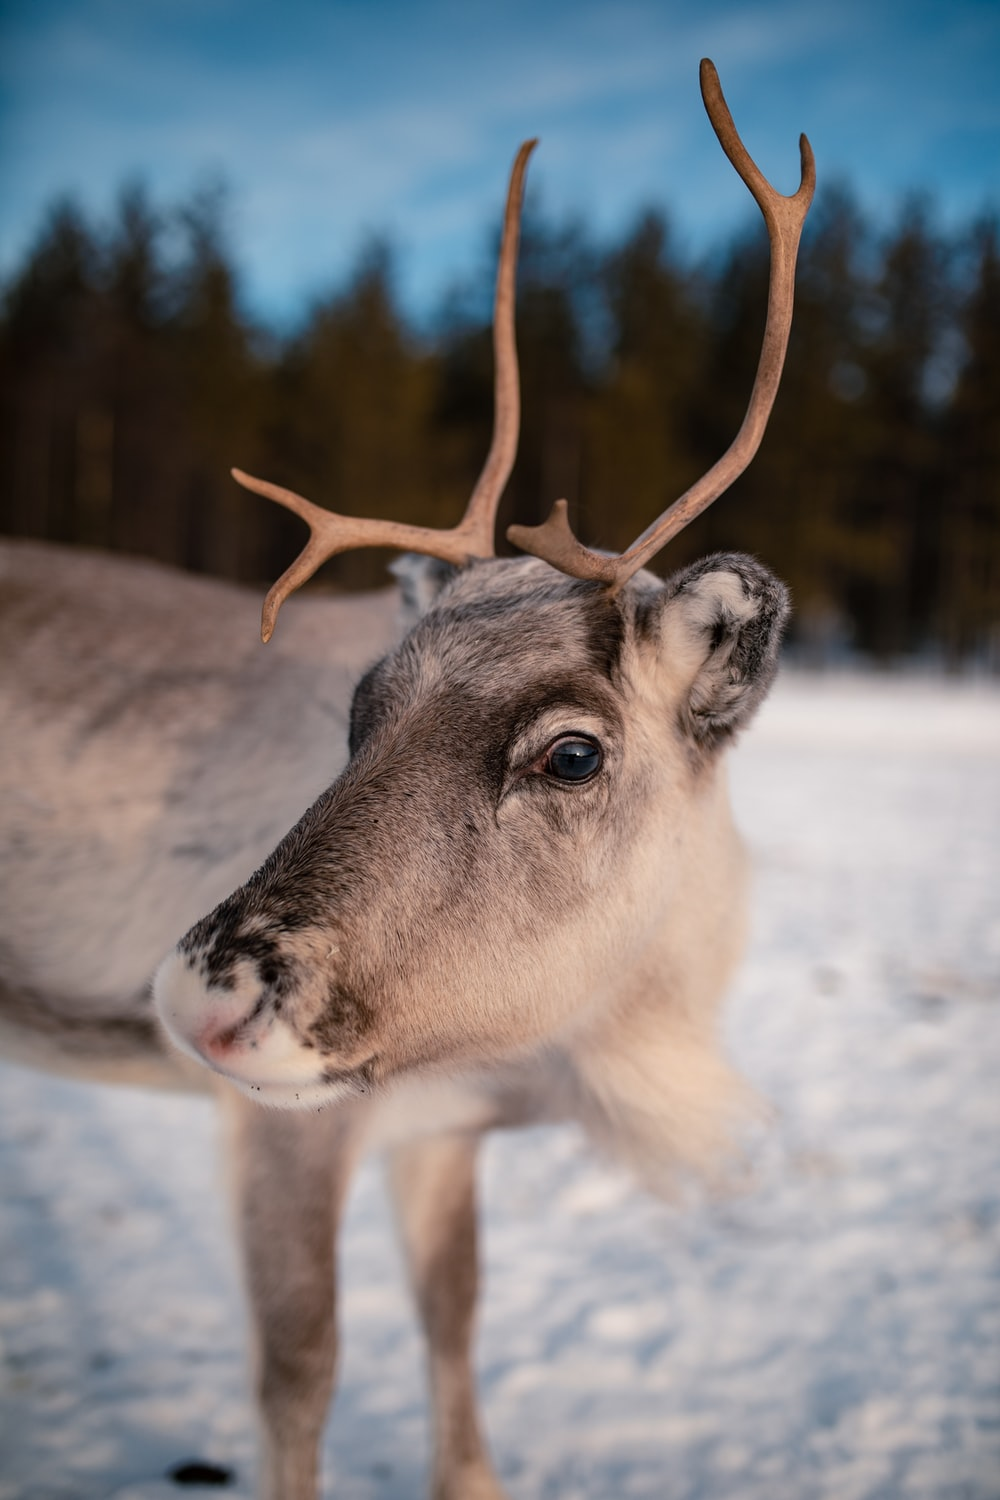 focus photography of deer standing during daytime